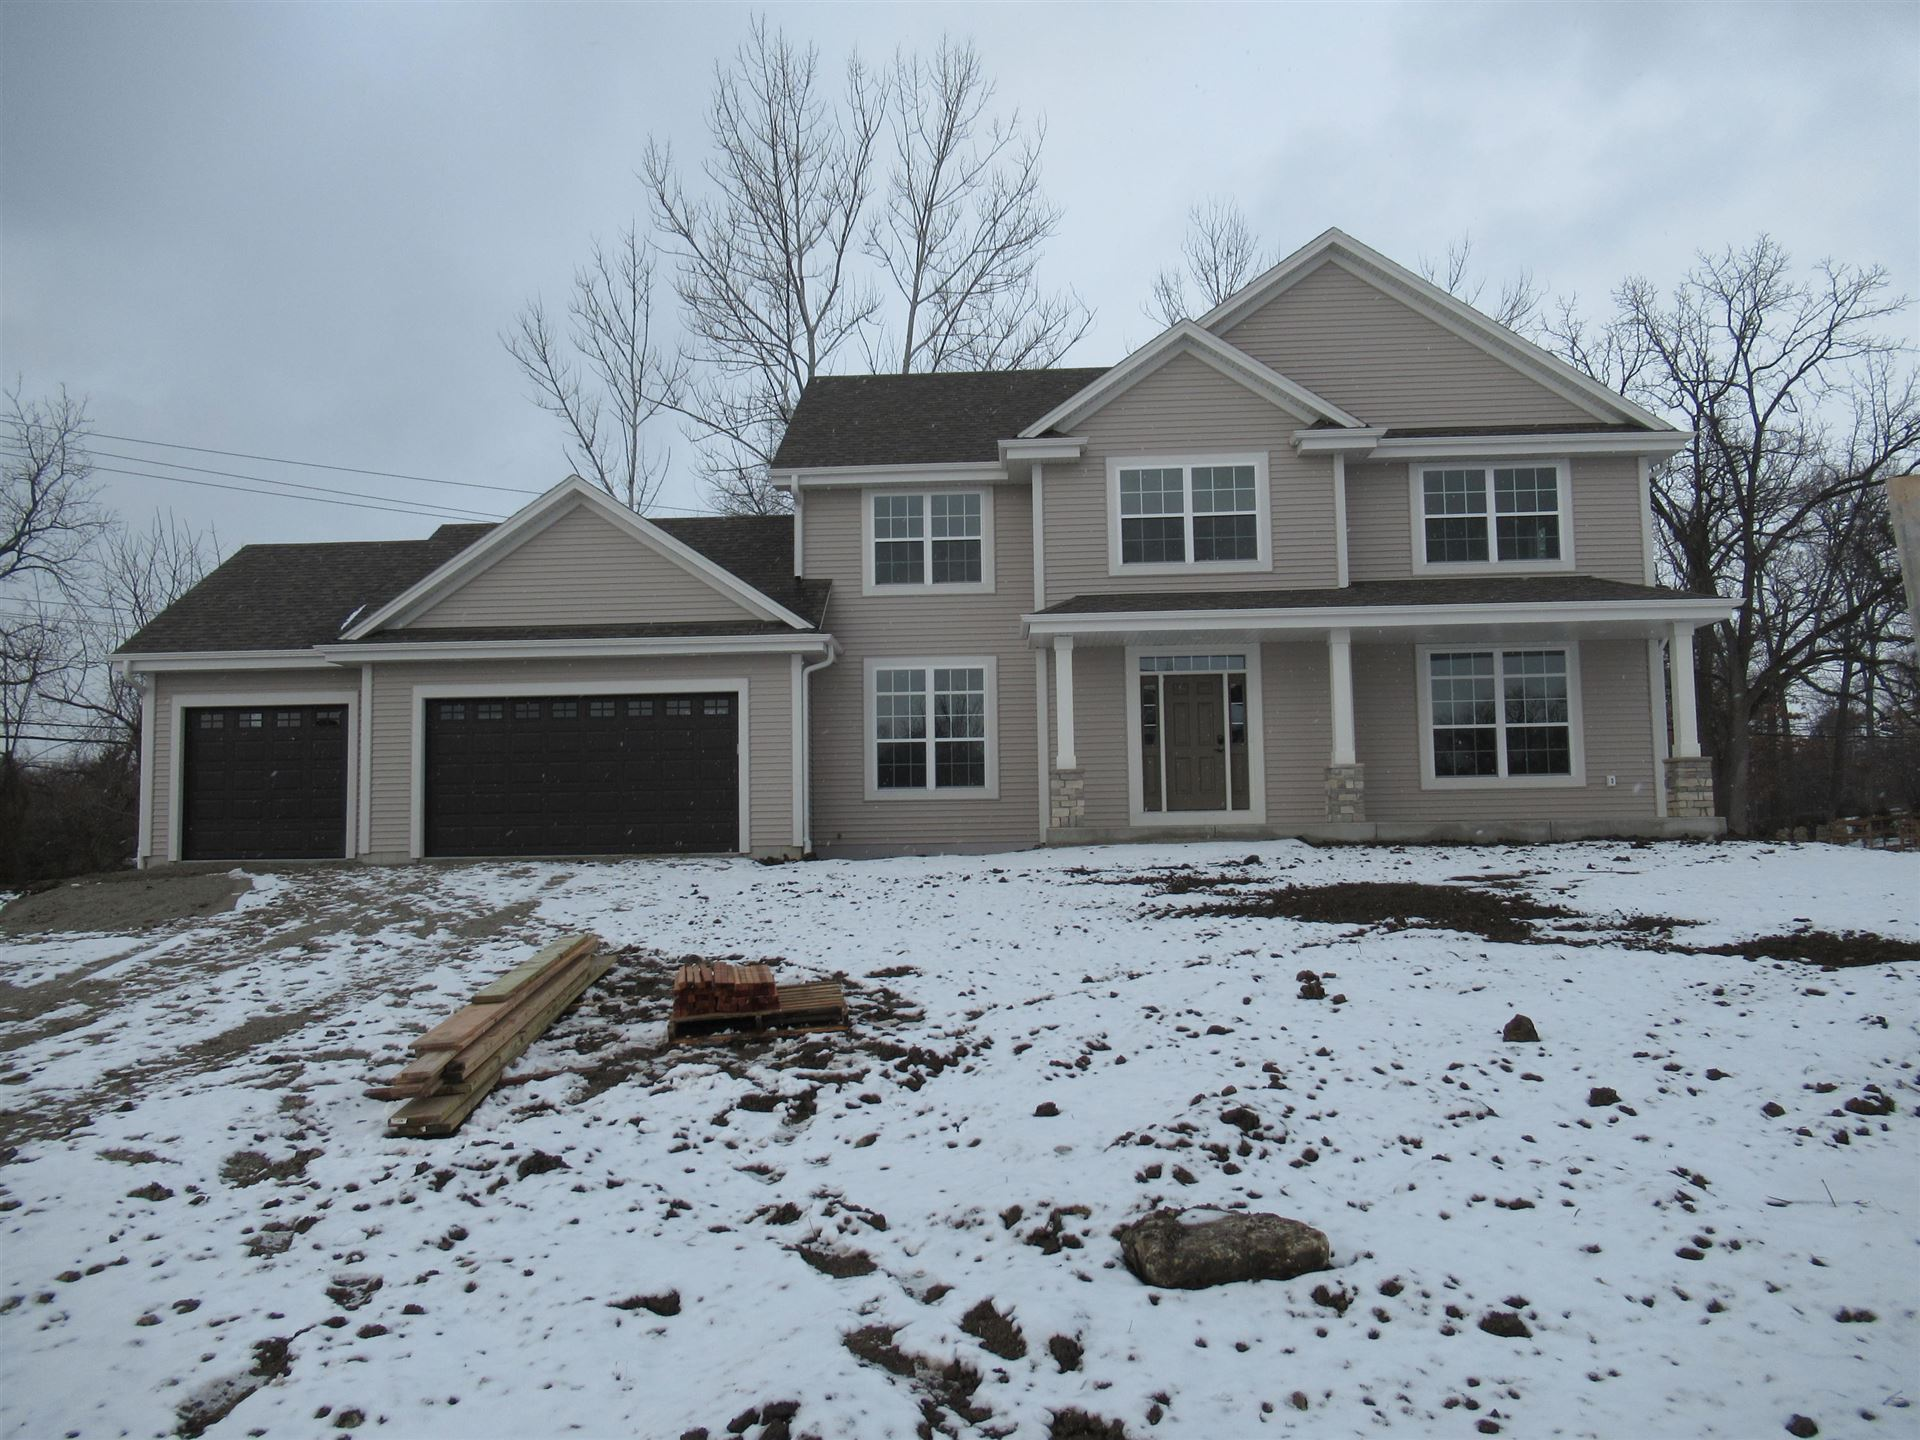 5265 S 37th St, Greenfield, WI 53221 - #: 1684071